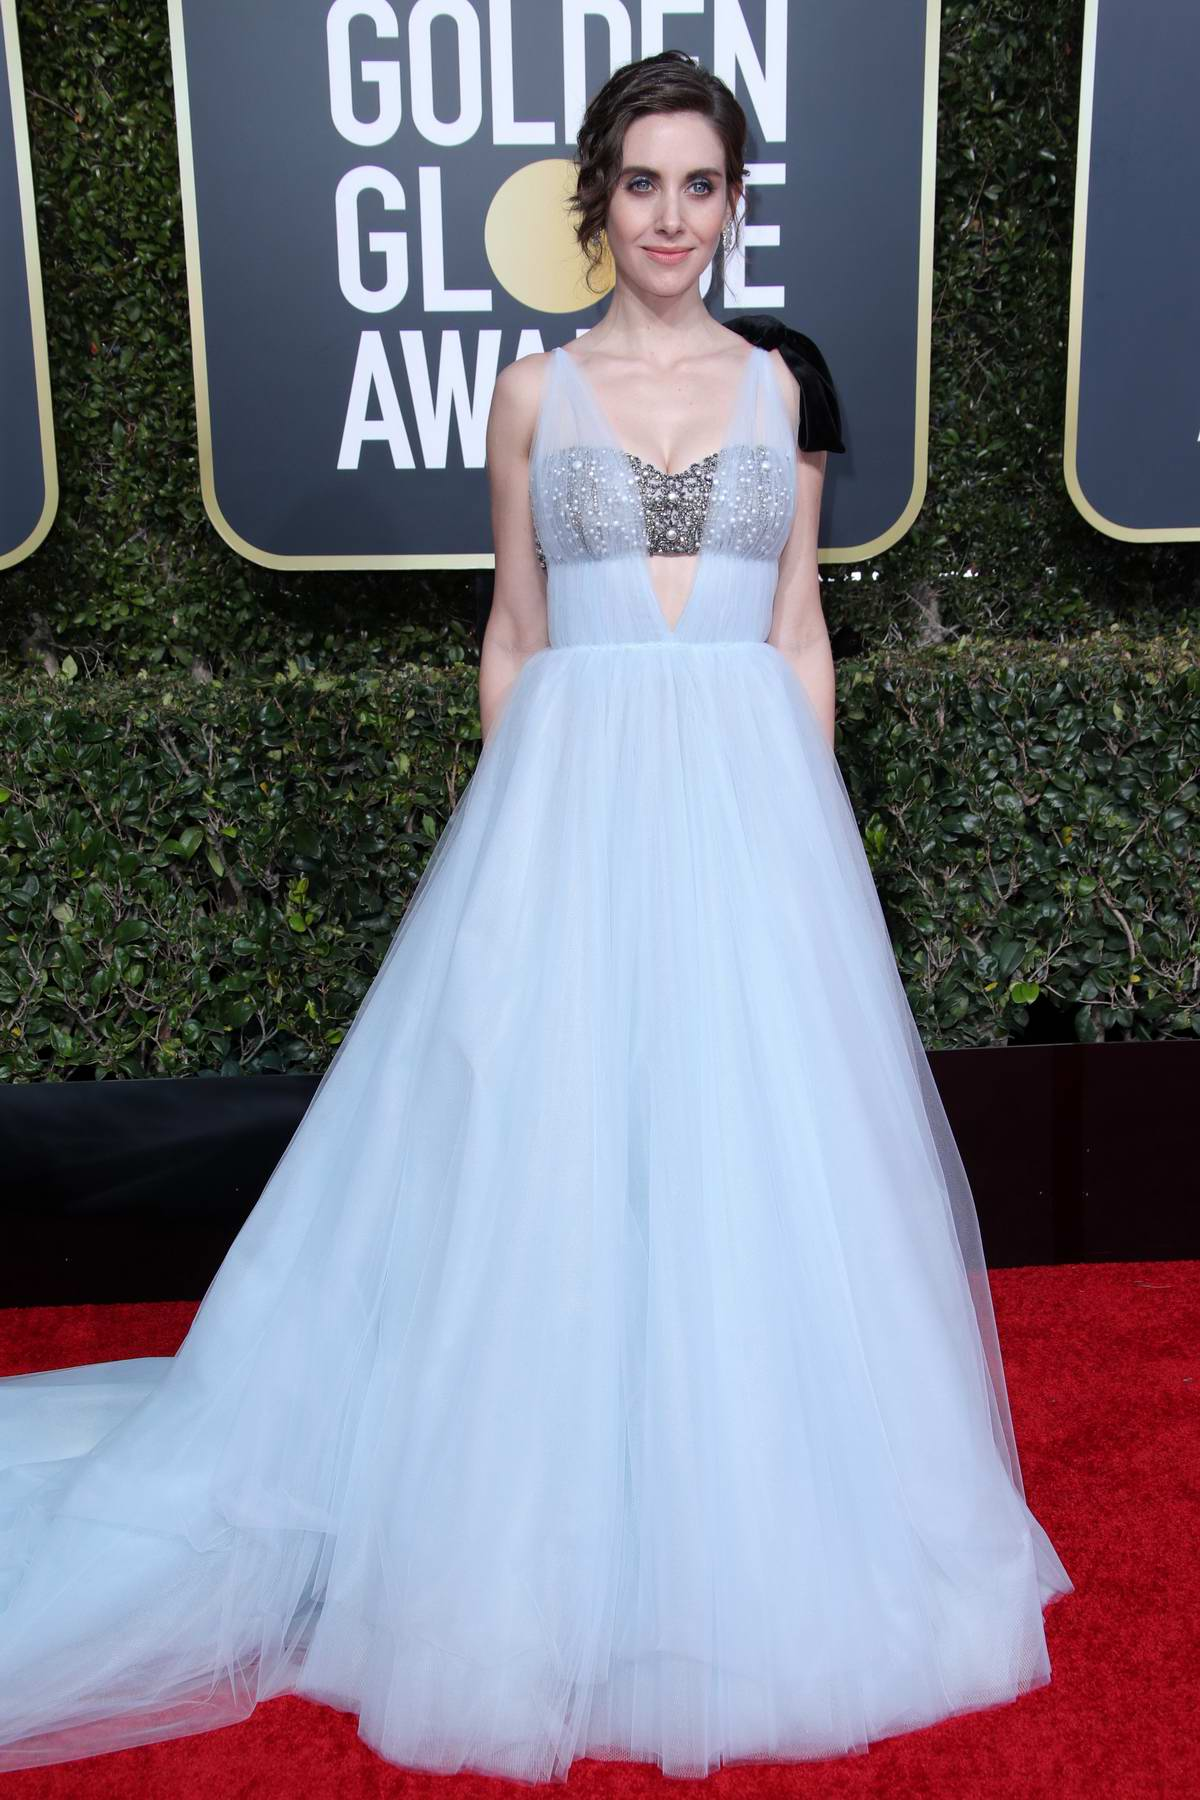 Alison Brie attends the 76th Annual Golden Globe Awards held at The Beverly Hilton Hotel in Los Angeles, California